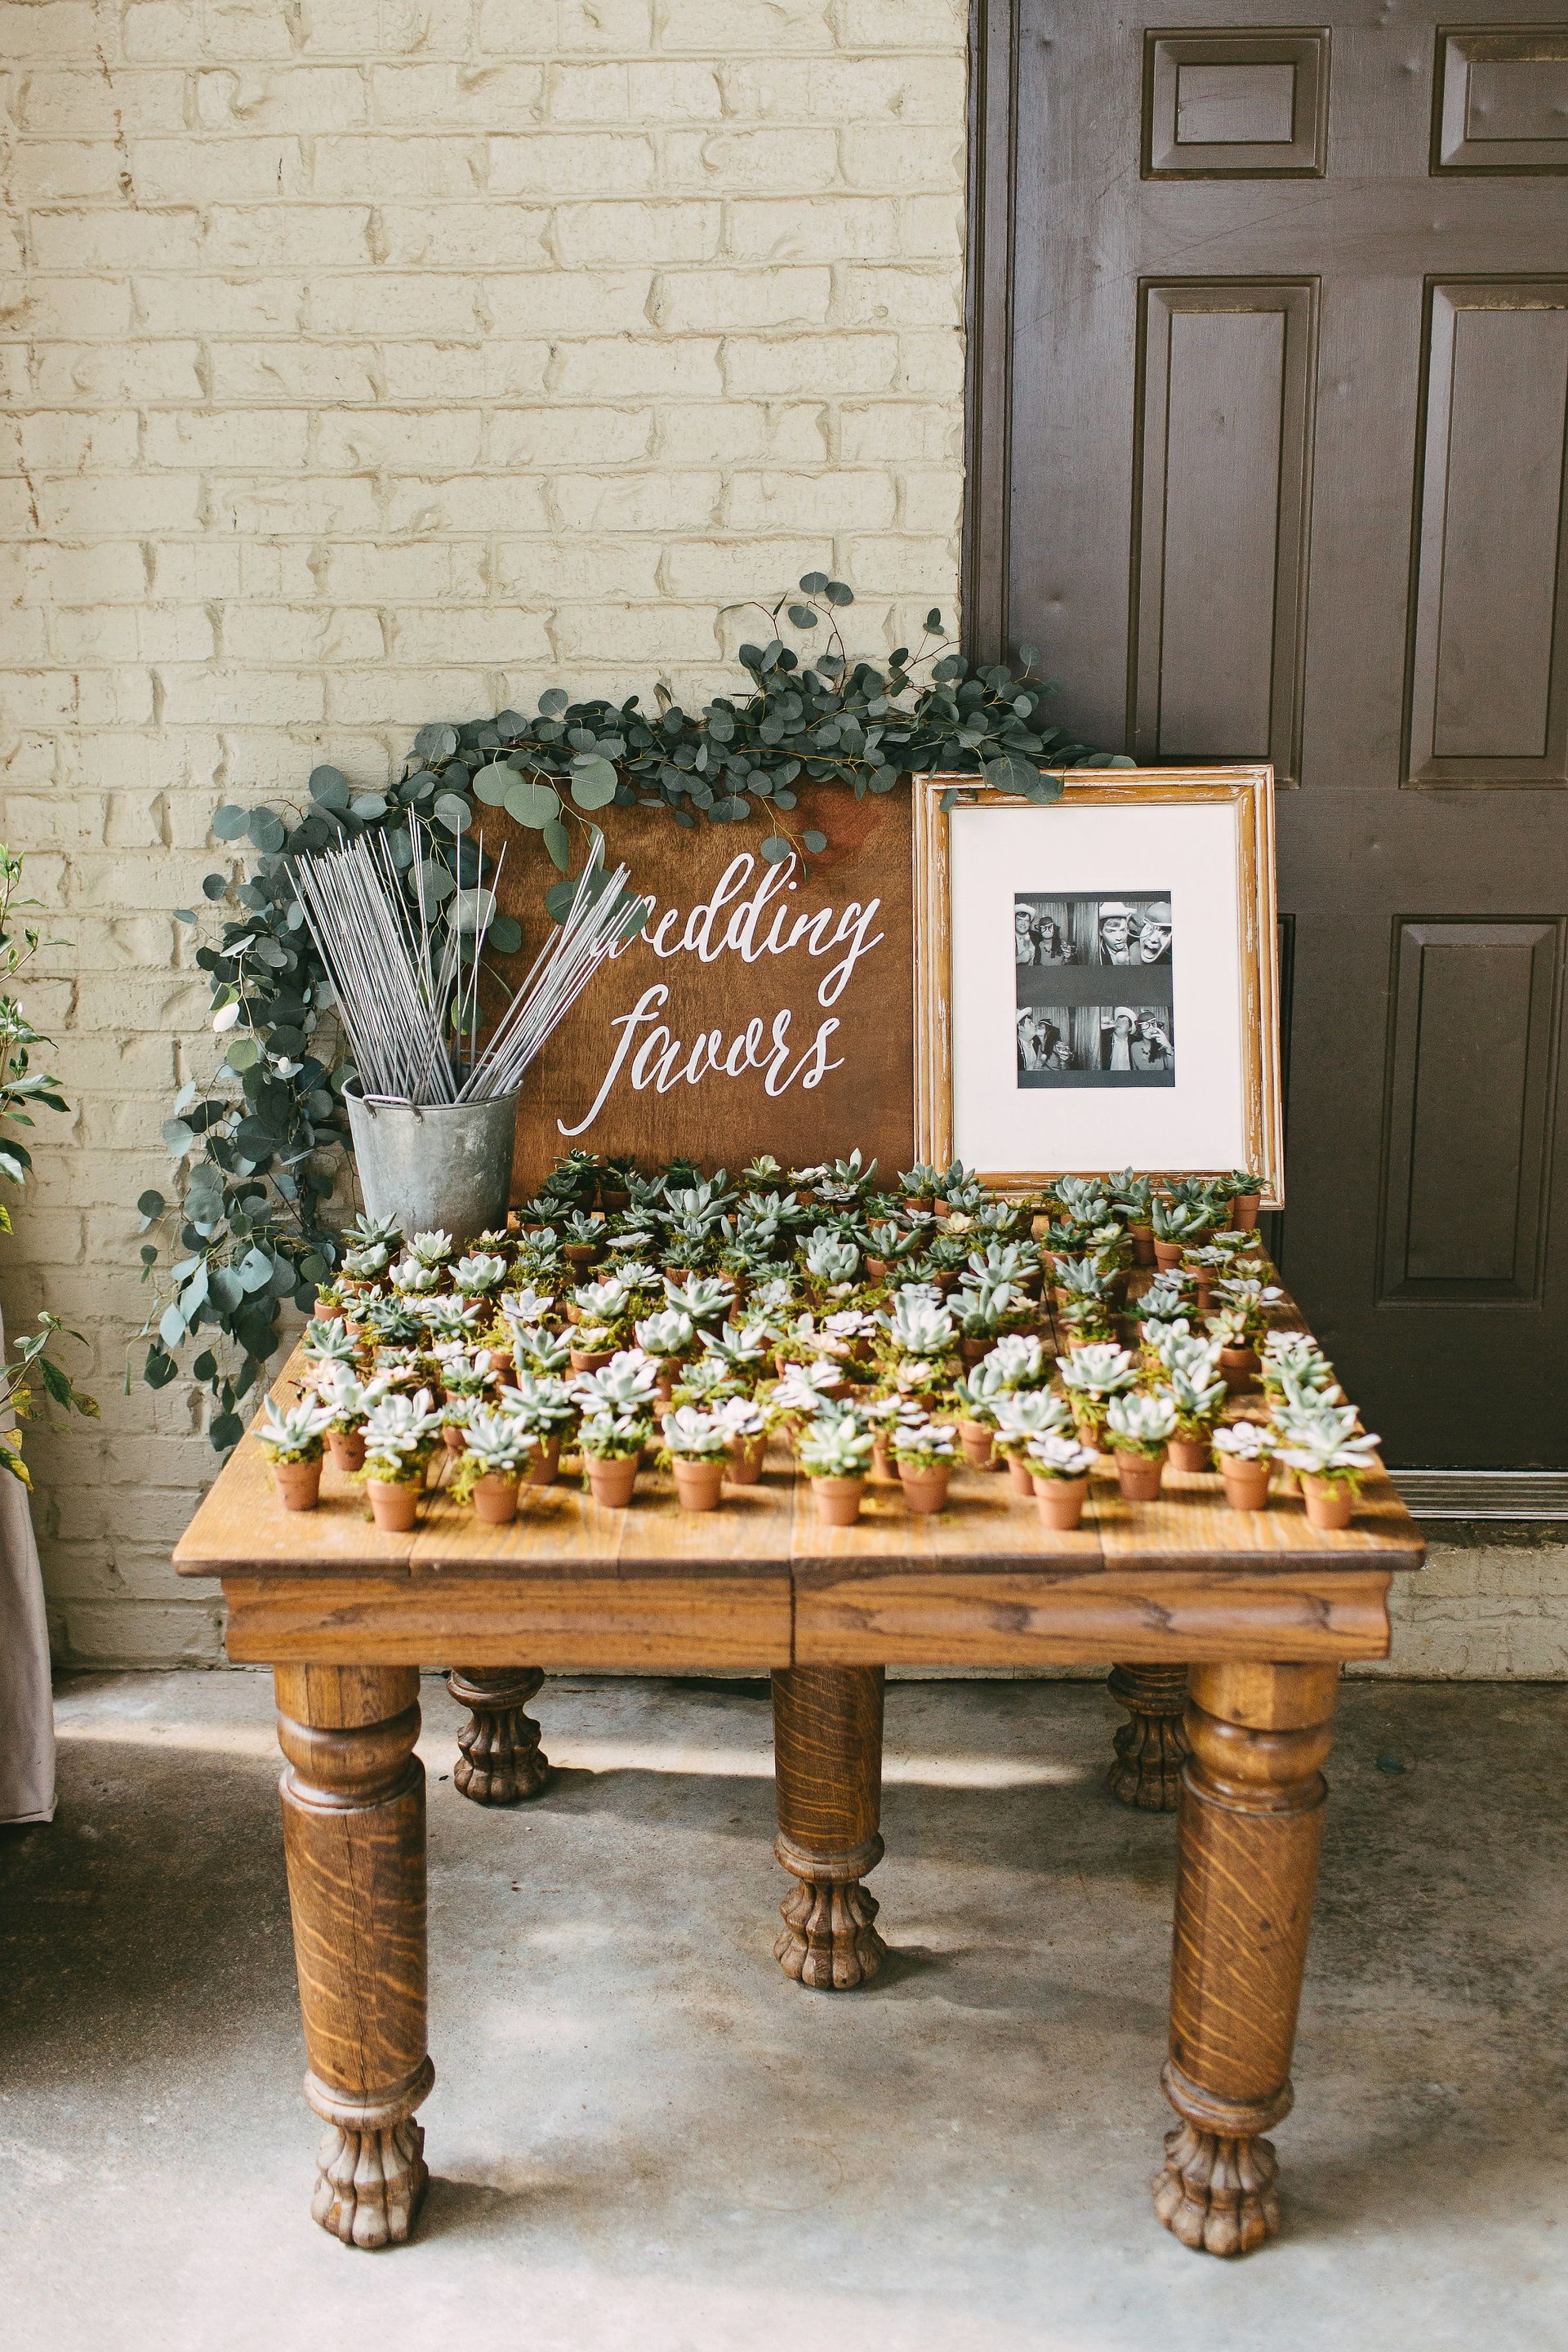 Wooden table, wedding favors stand, mini potted succulents